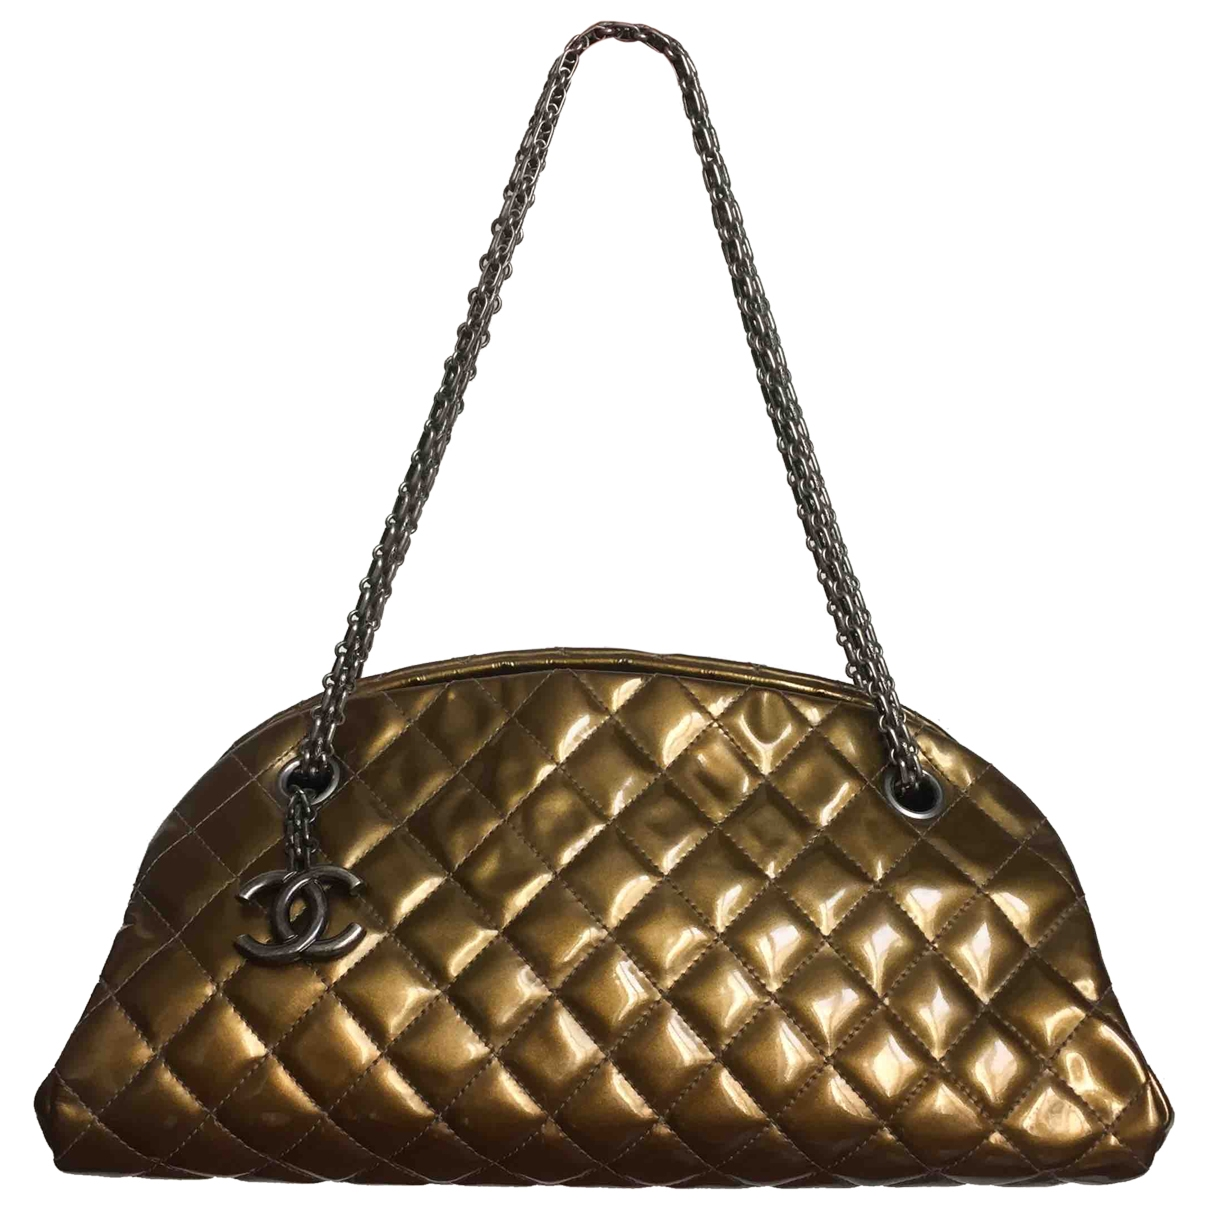 Chanel Mademoiselle Gold Patent leather handbag for Women \N